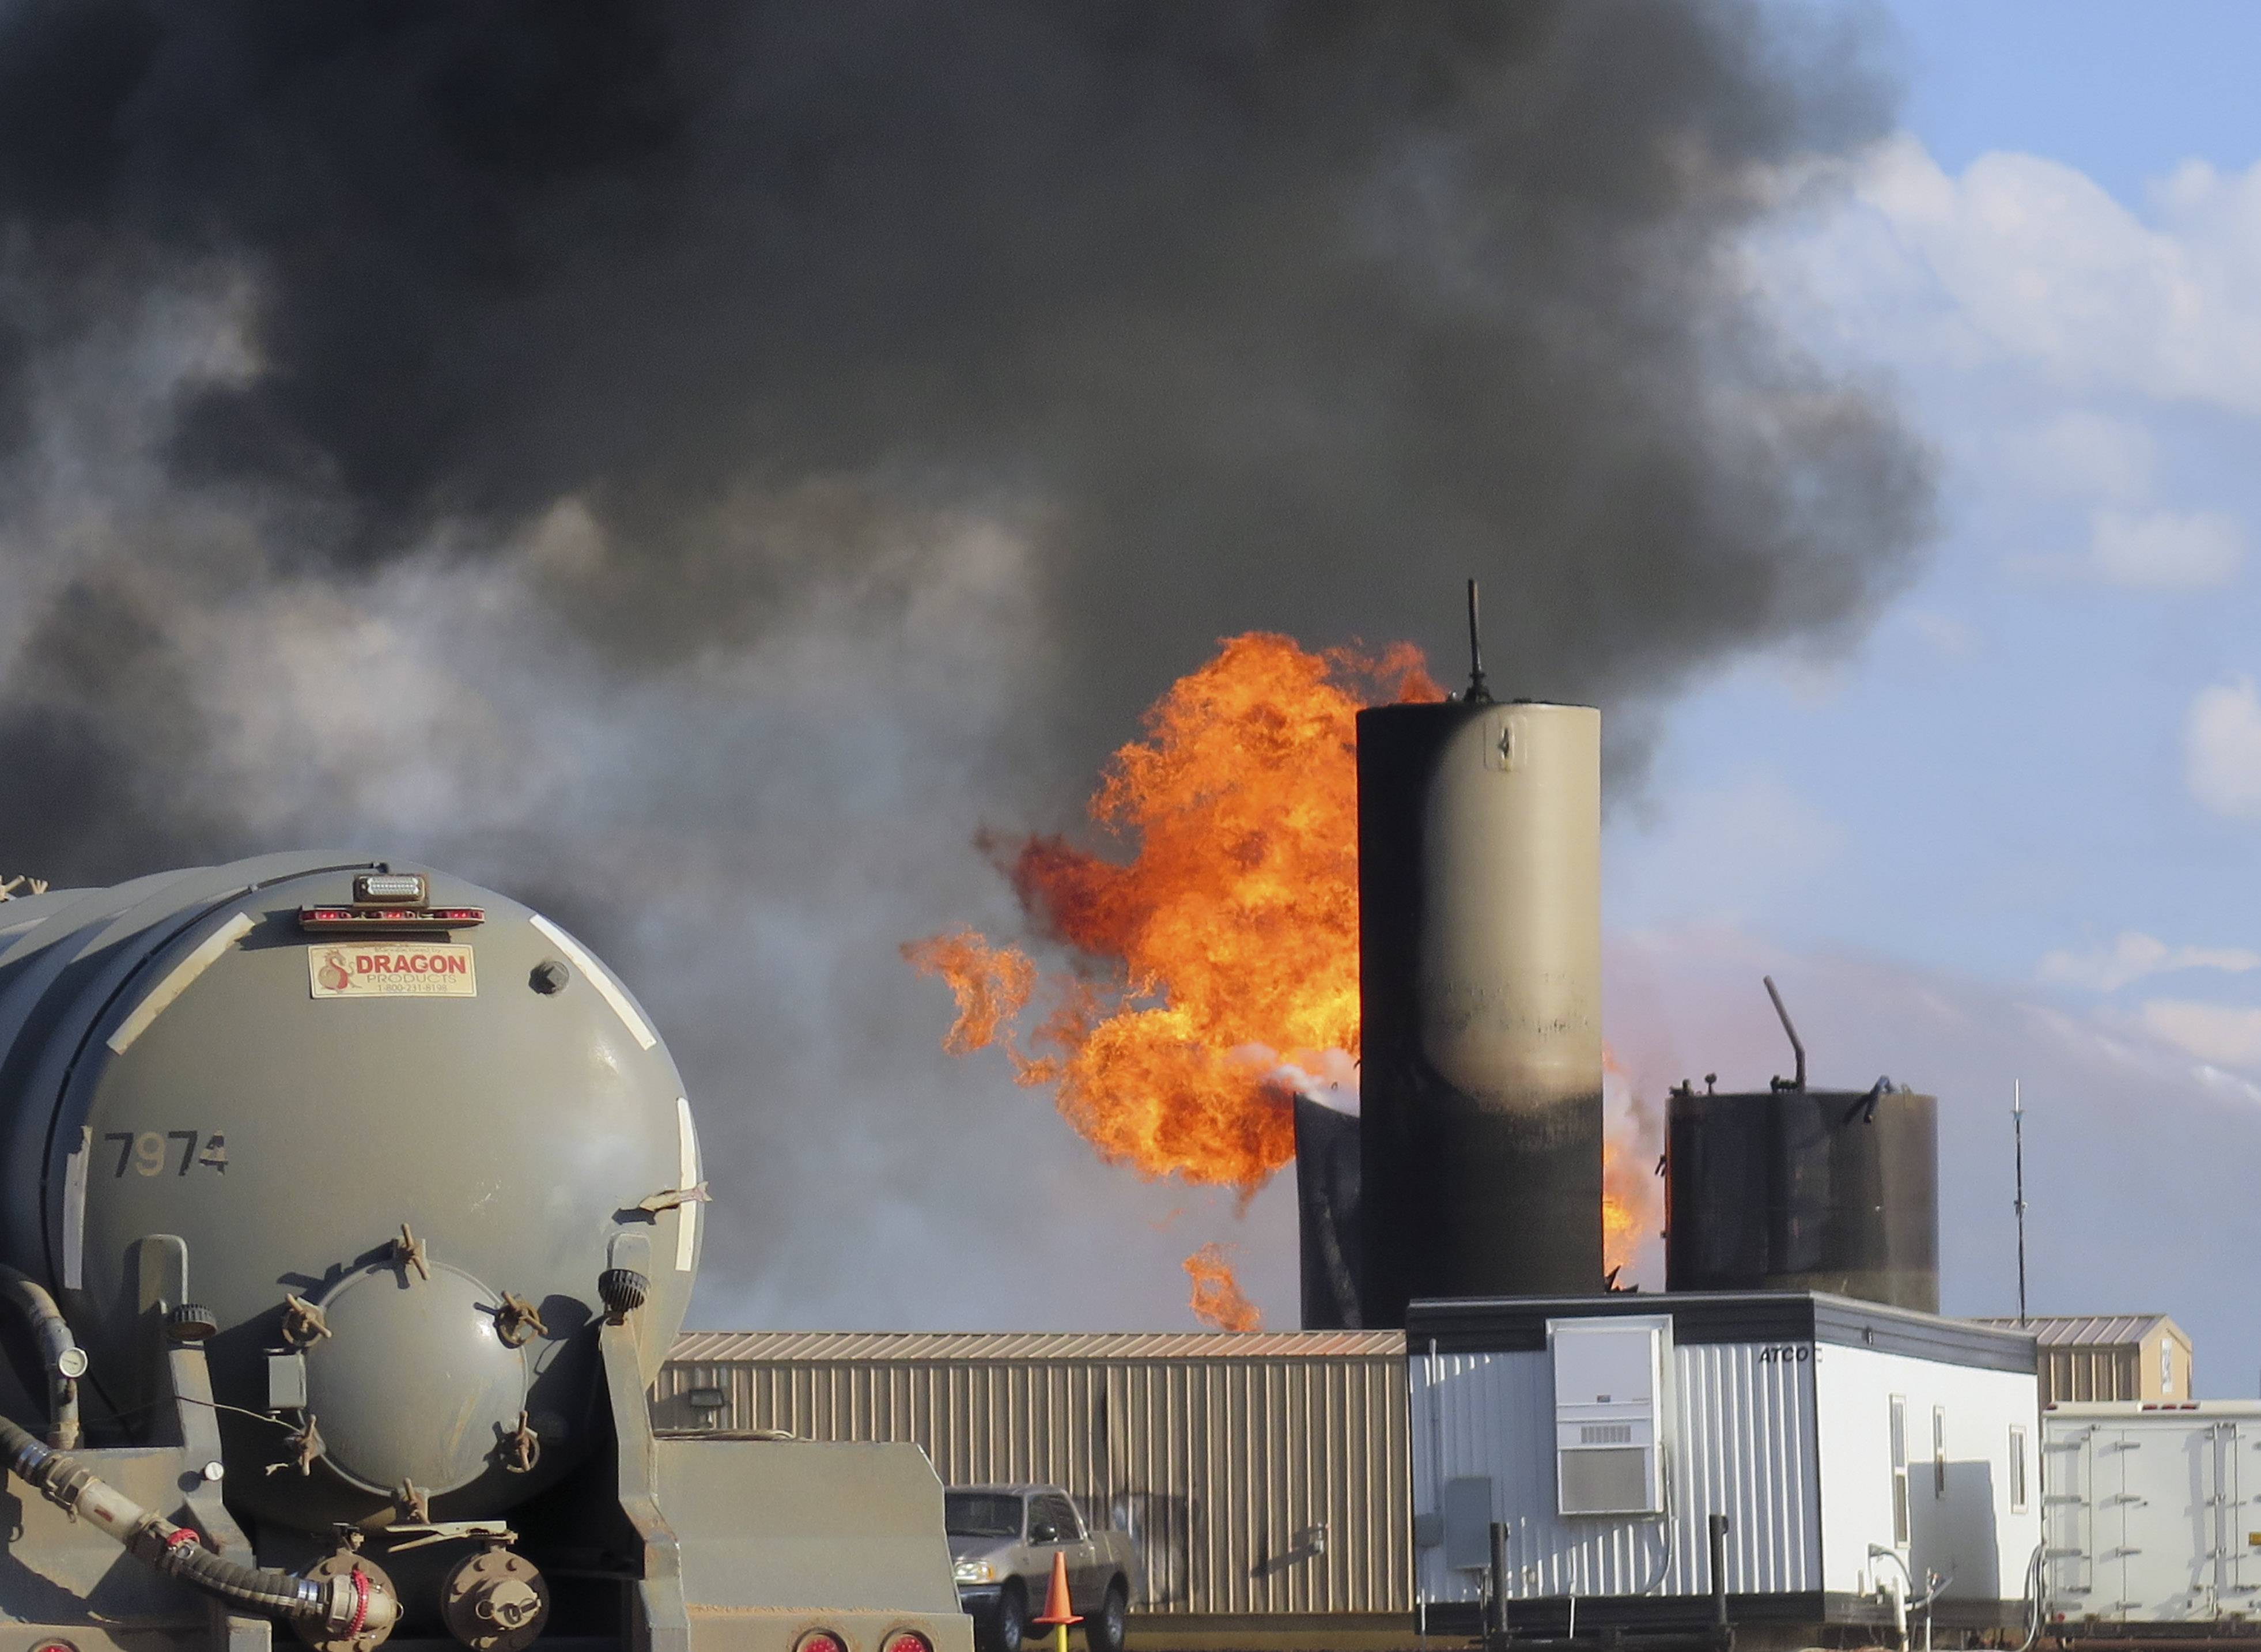 A saltwater disposal facility burns after it was struck by lightning, near Alexander, N.D.